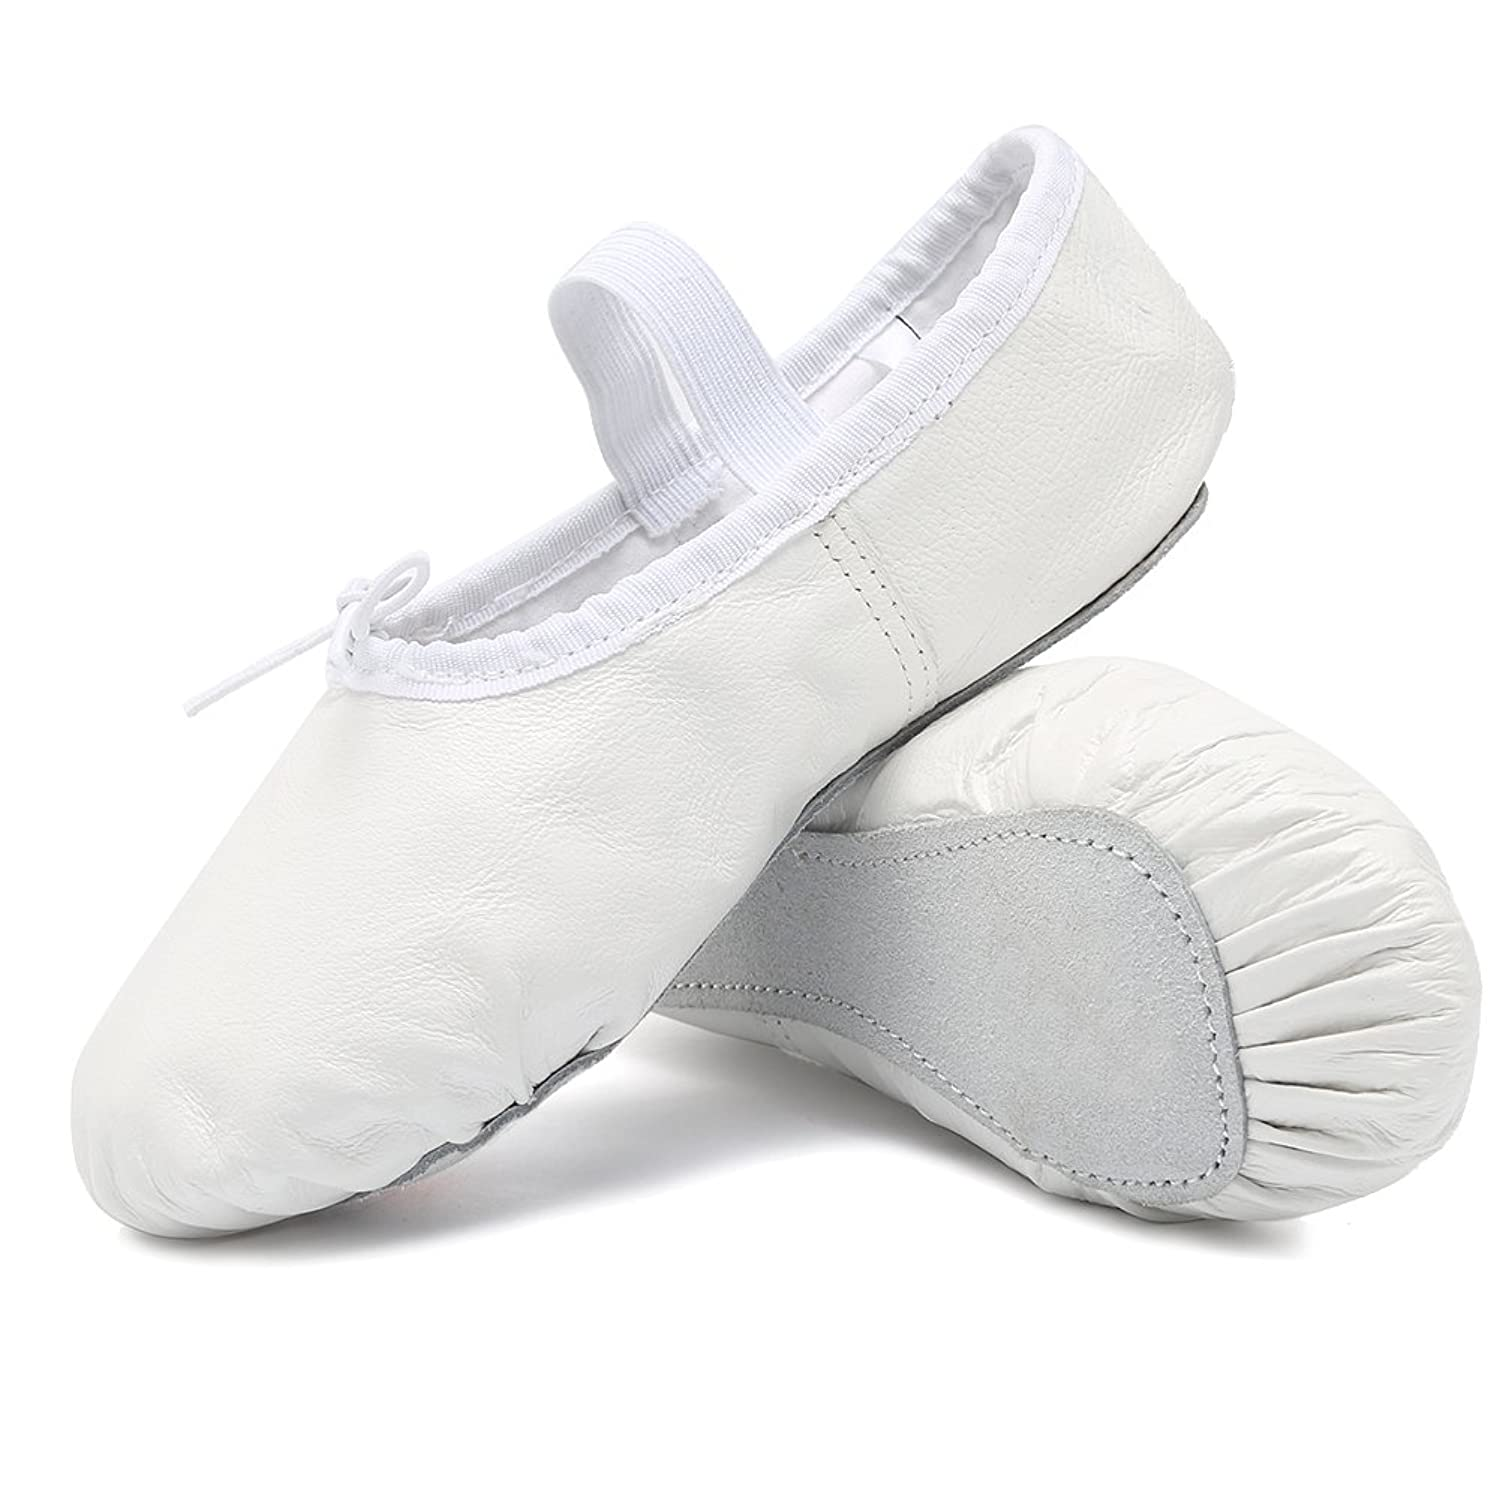 CIOR Premium Leather Ballet Shoes for Girls Classic Dance Gymnastics Yoga Slippers Flats(Toddler/Little Kid/Big Kid/Women)